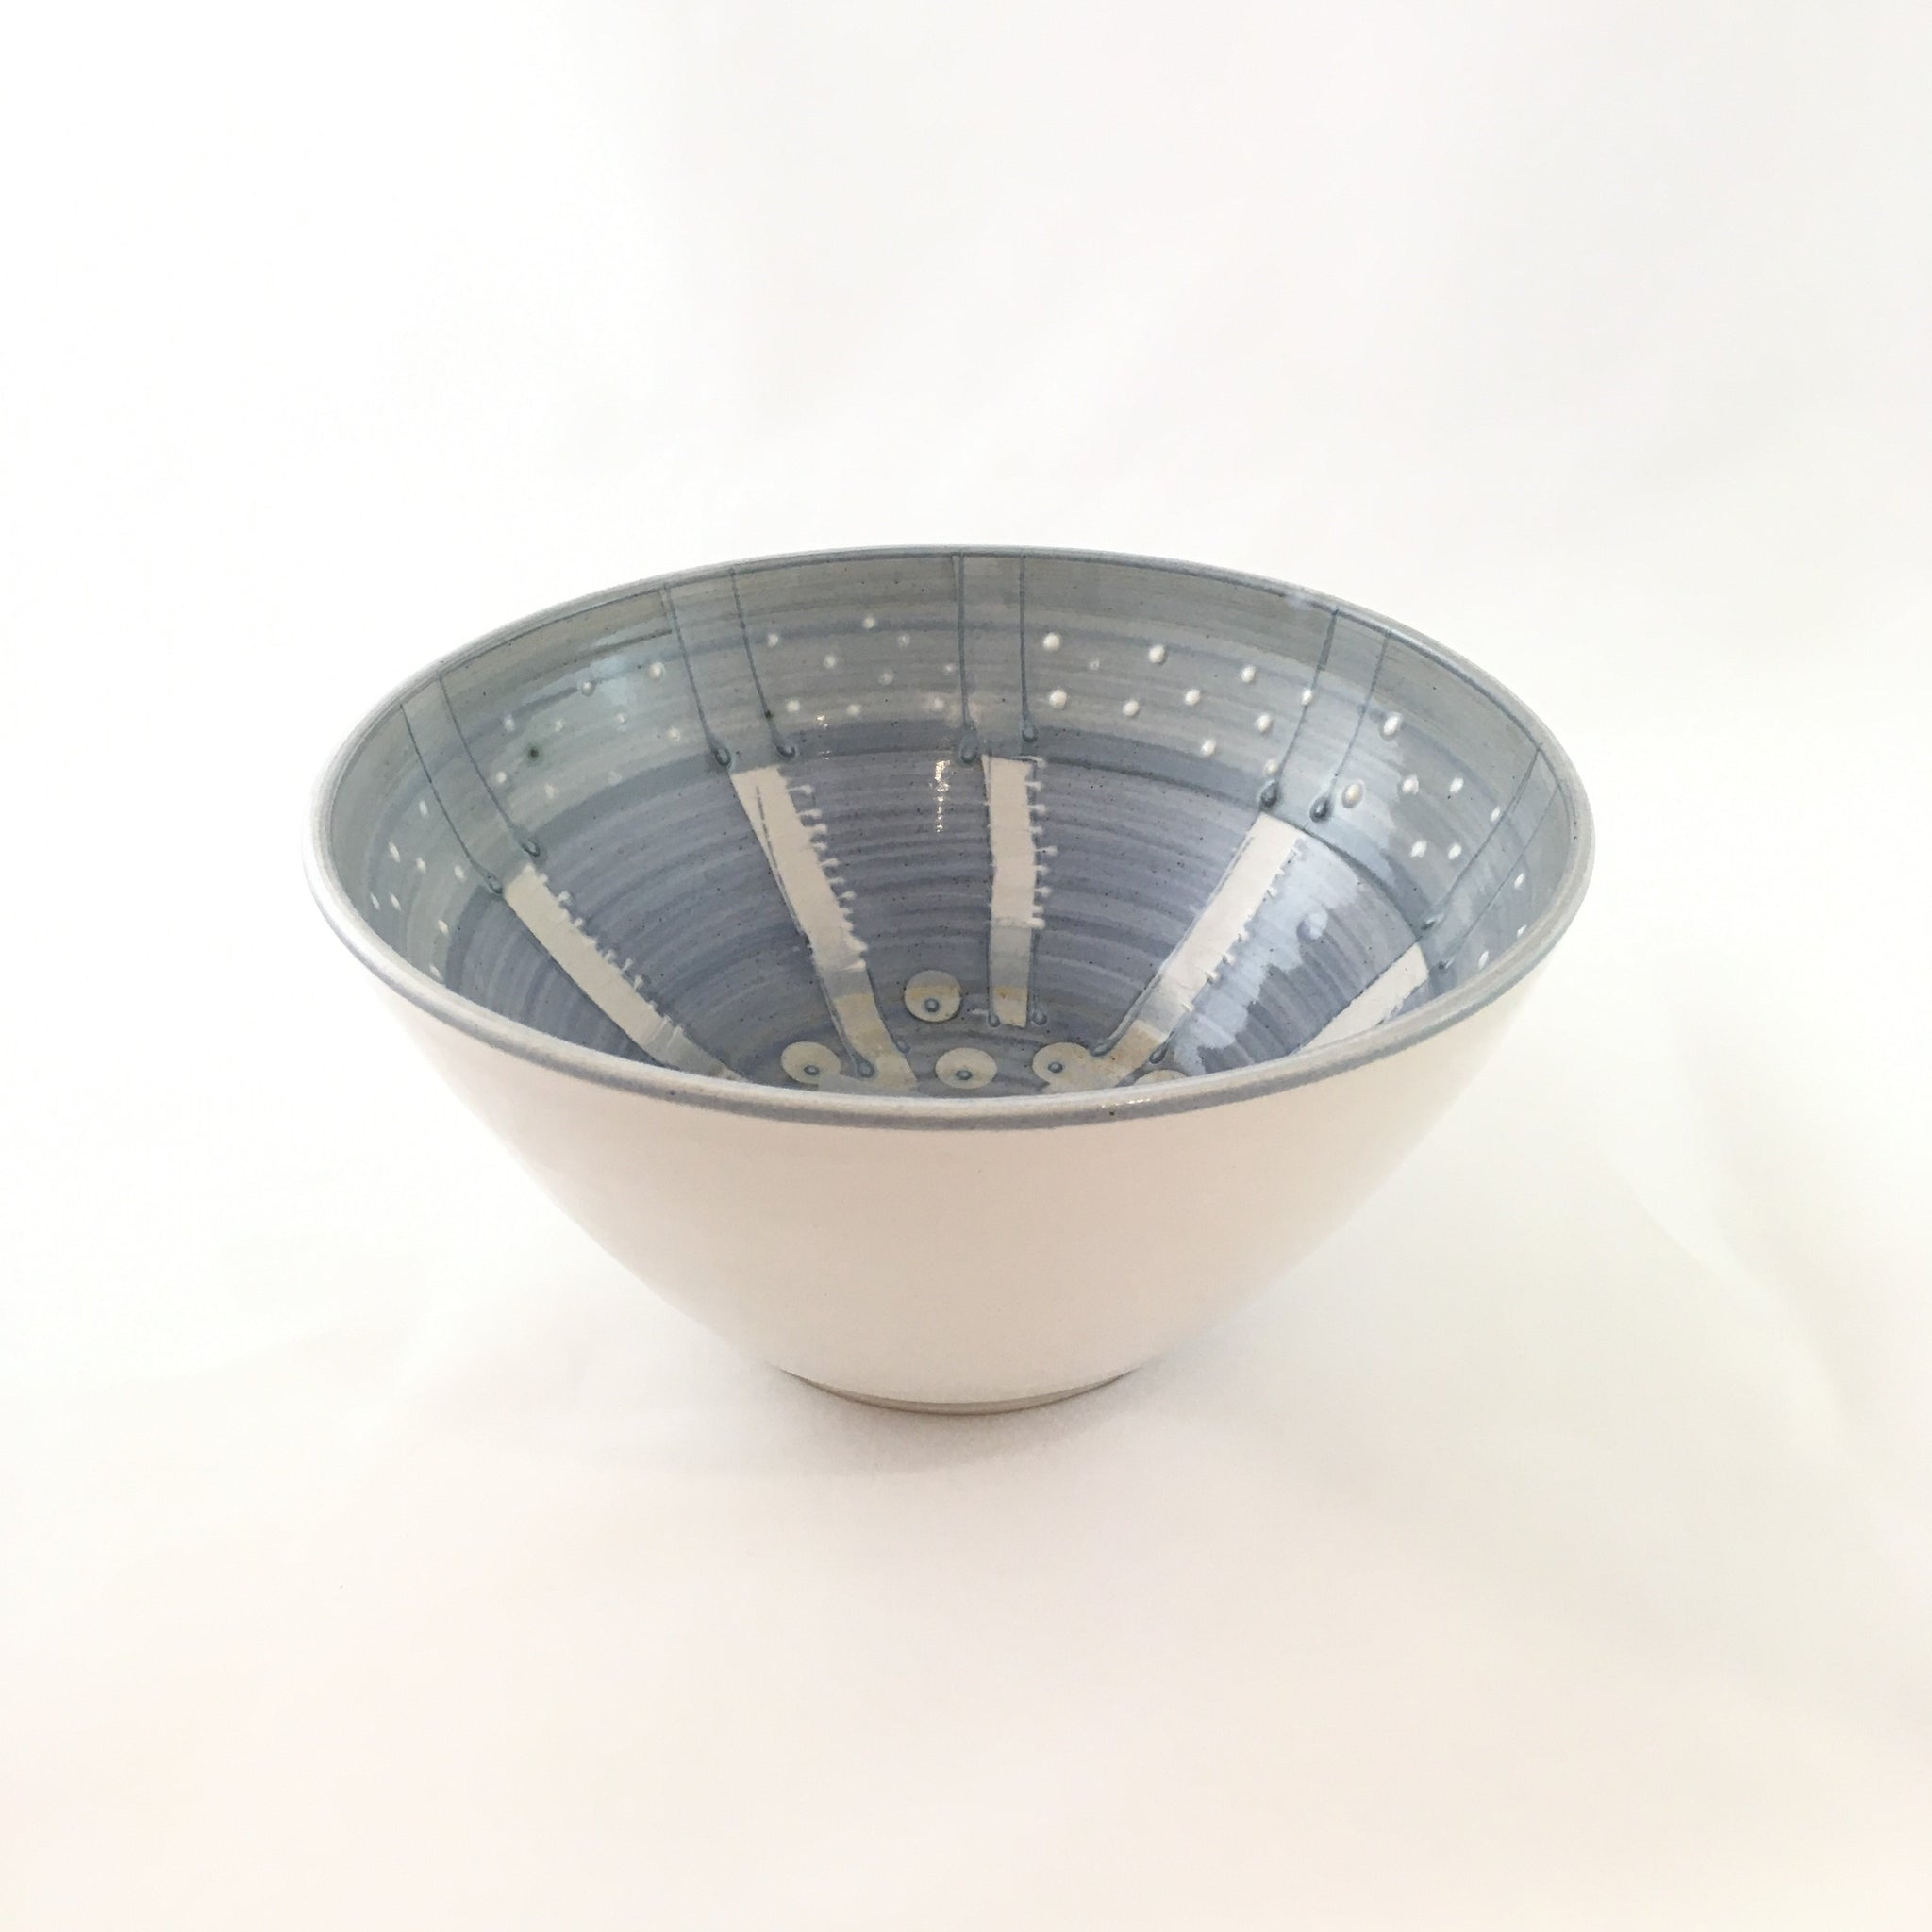 stoneware bowl at Craft NSW